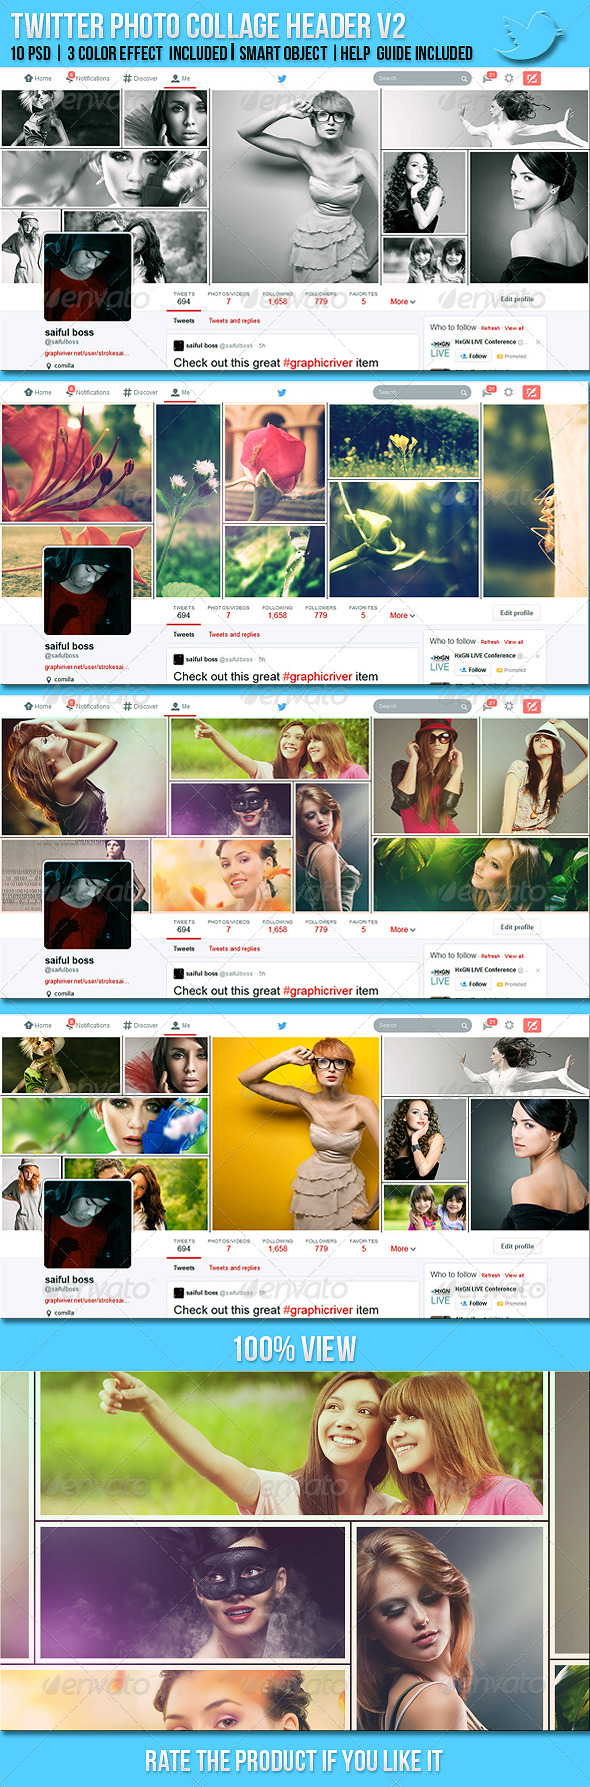 GraphicRiver Twitter Photo Collage Header V2 7669316